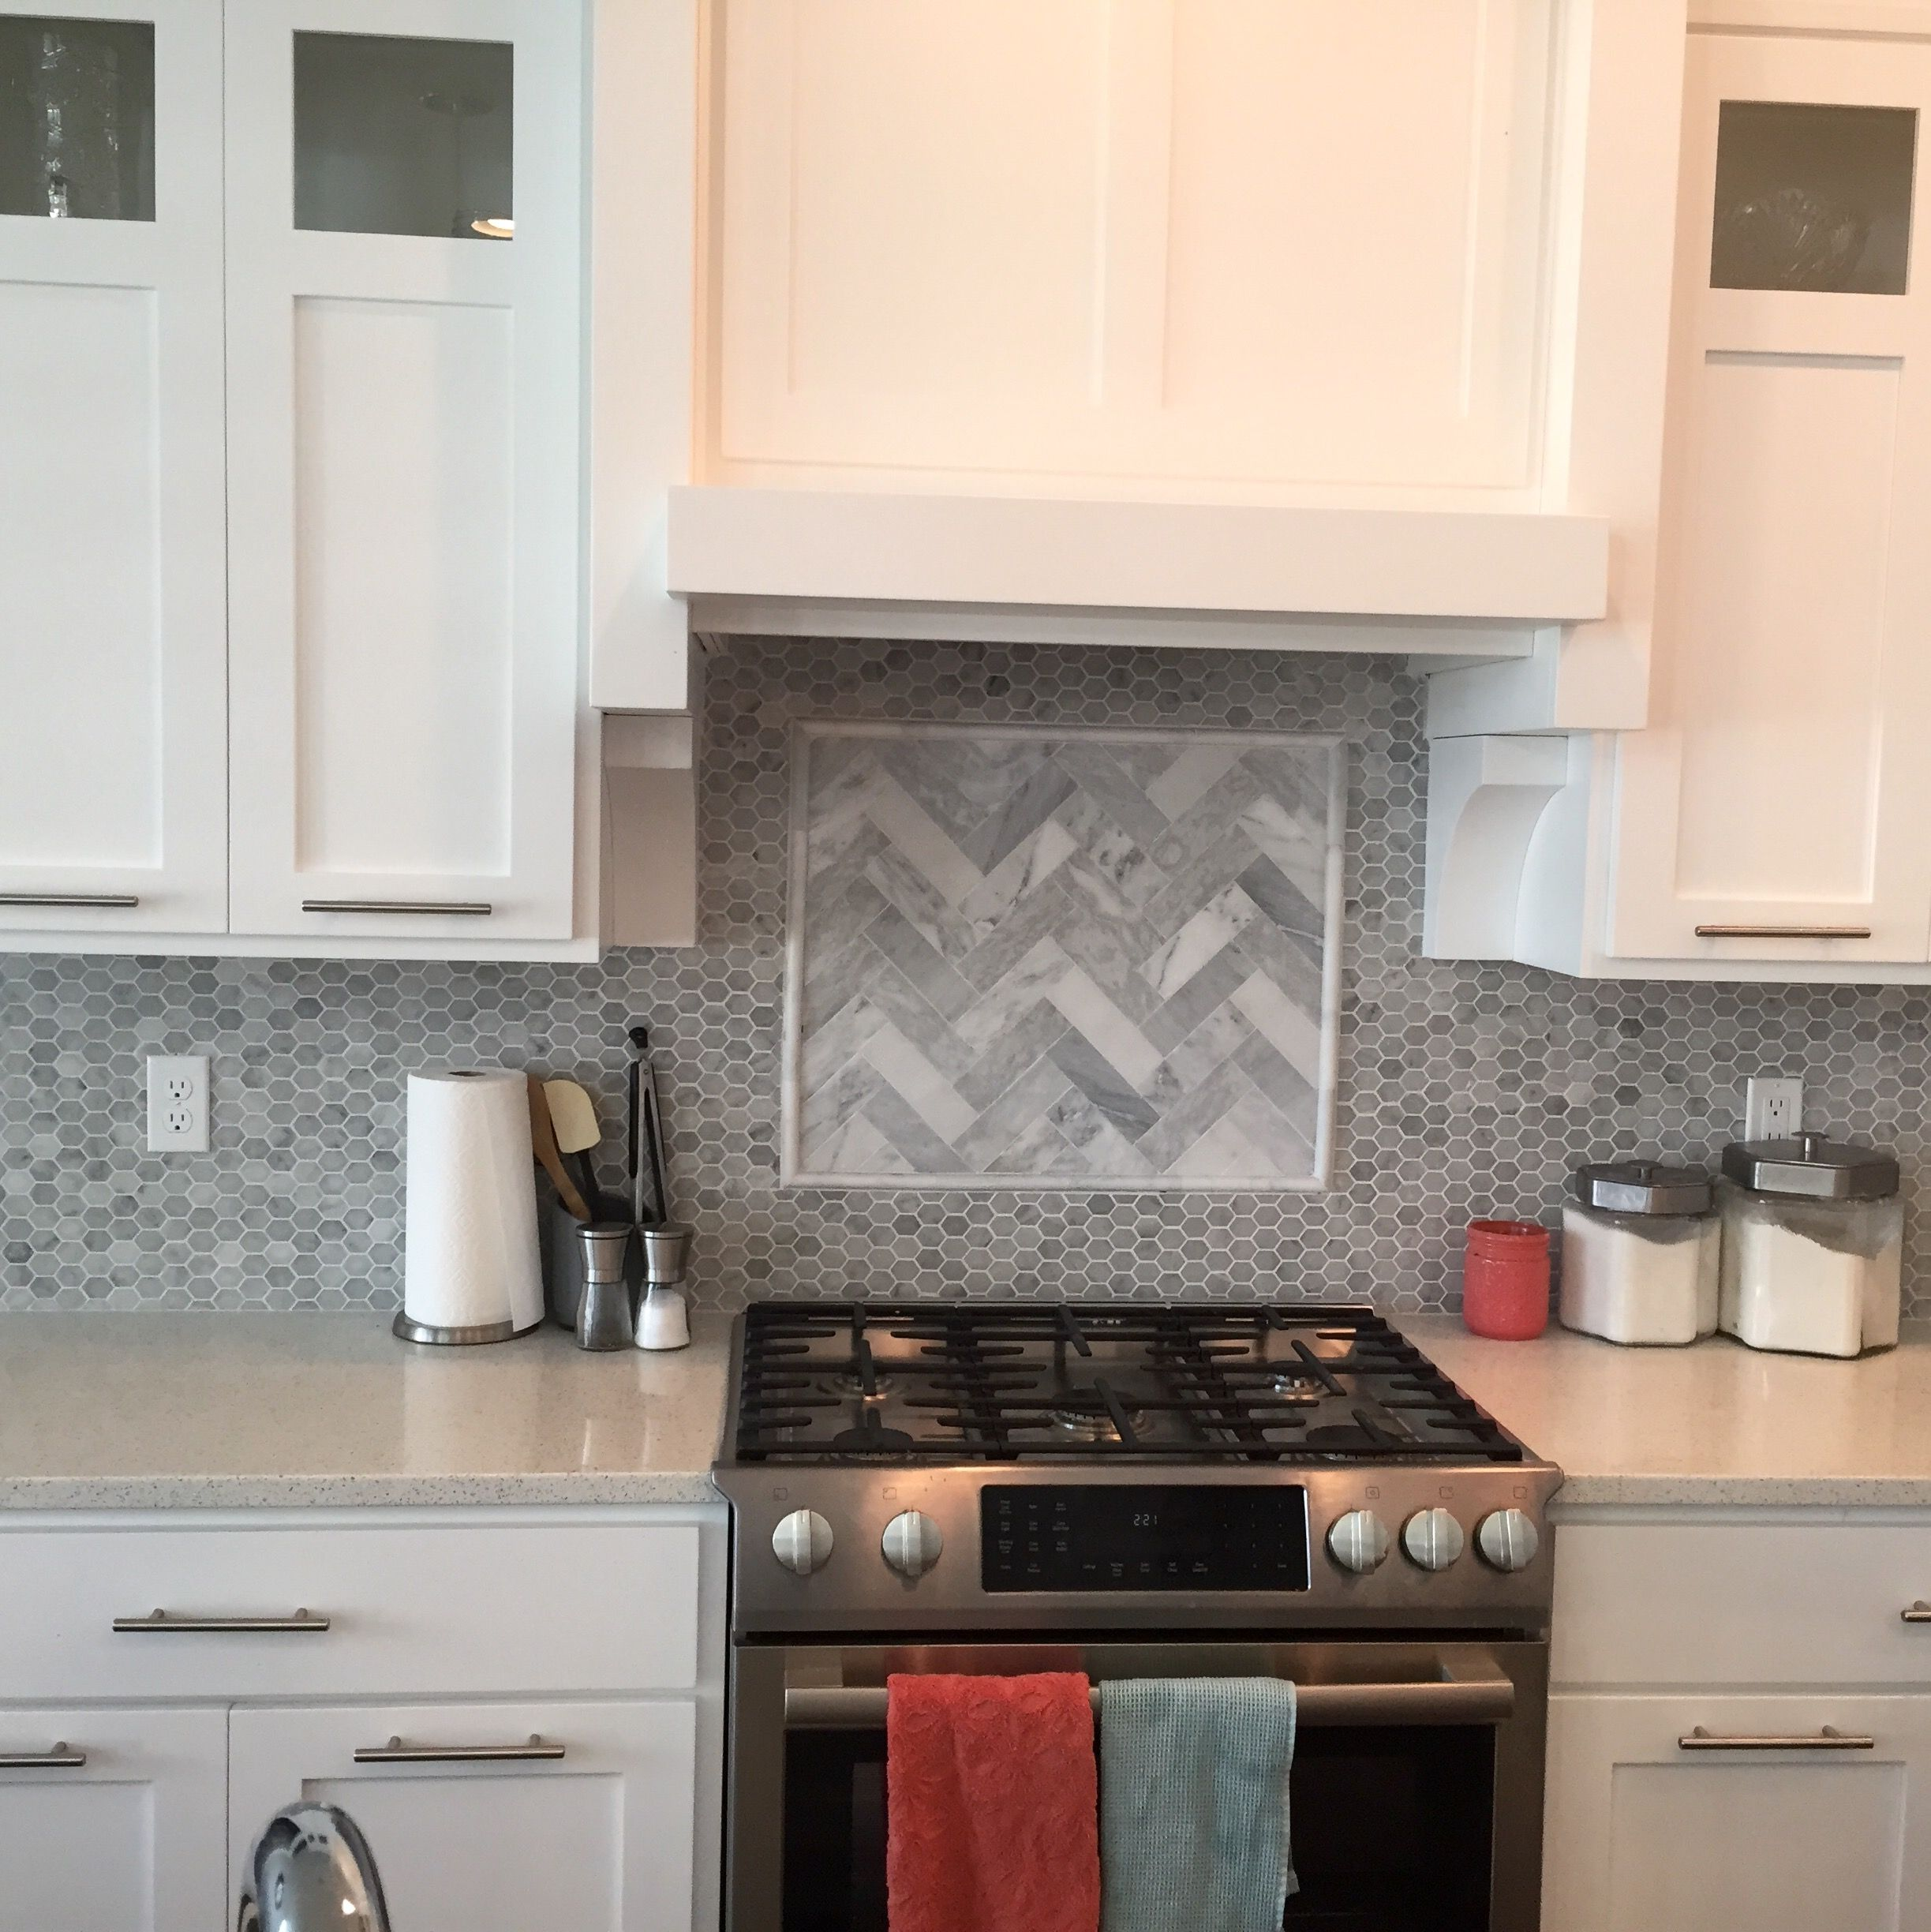 Backsplash Hexagon Tile With Herringbone Insert Love Rustic